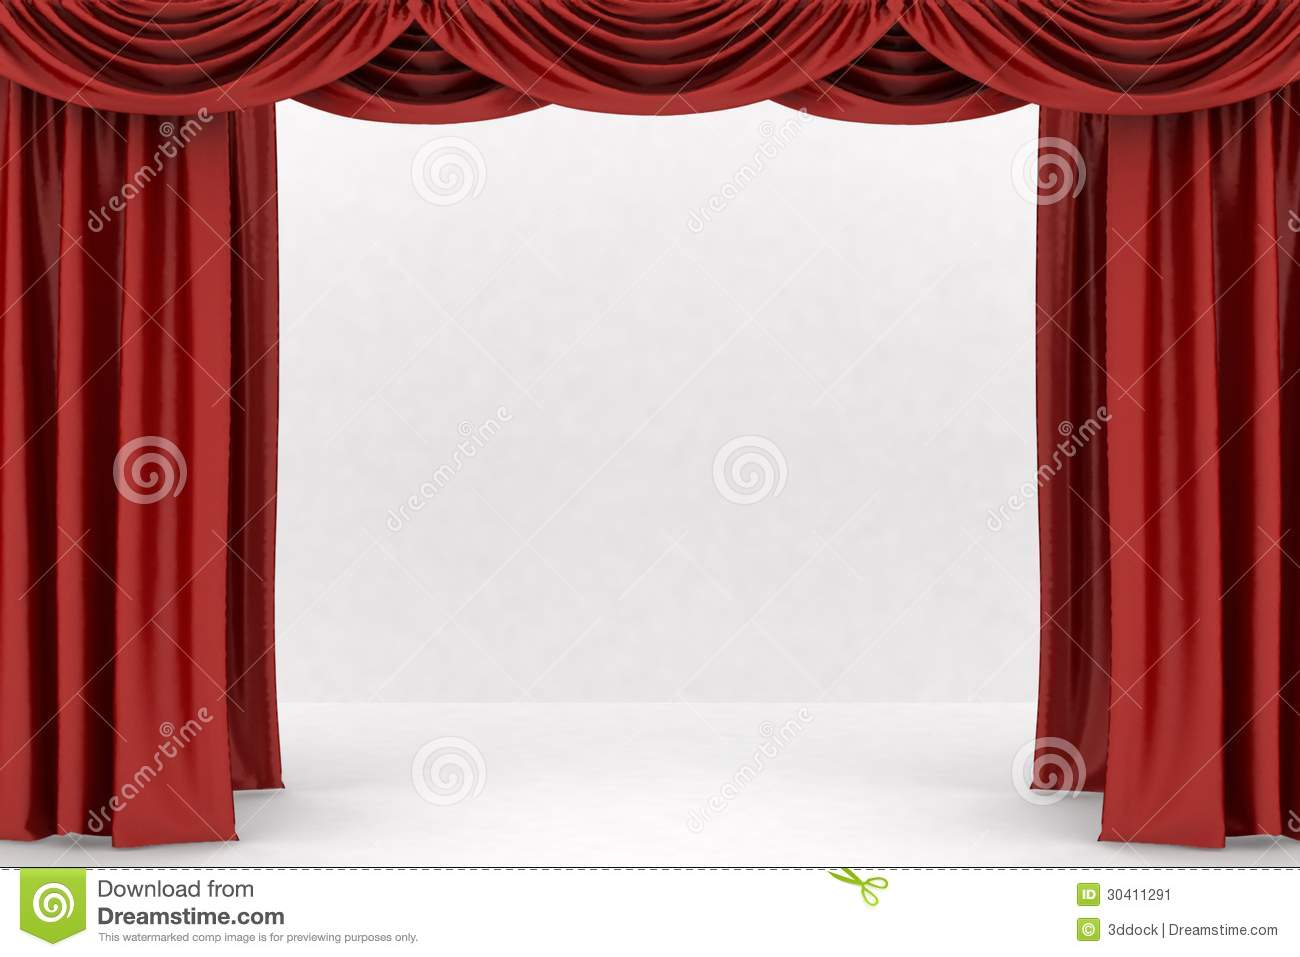 Open theater drapes or stage curtains royalty free stock image image - Open Red Theater Curtain Stock Image